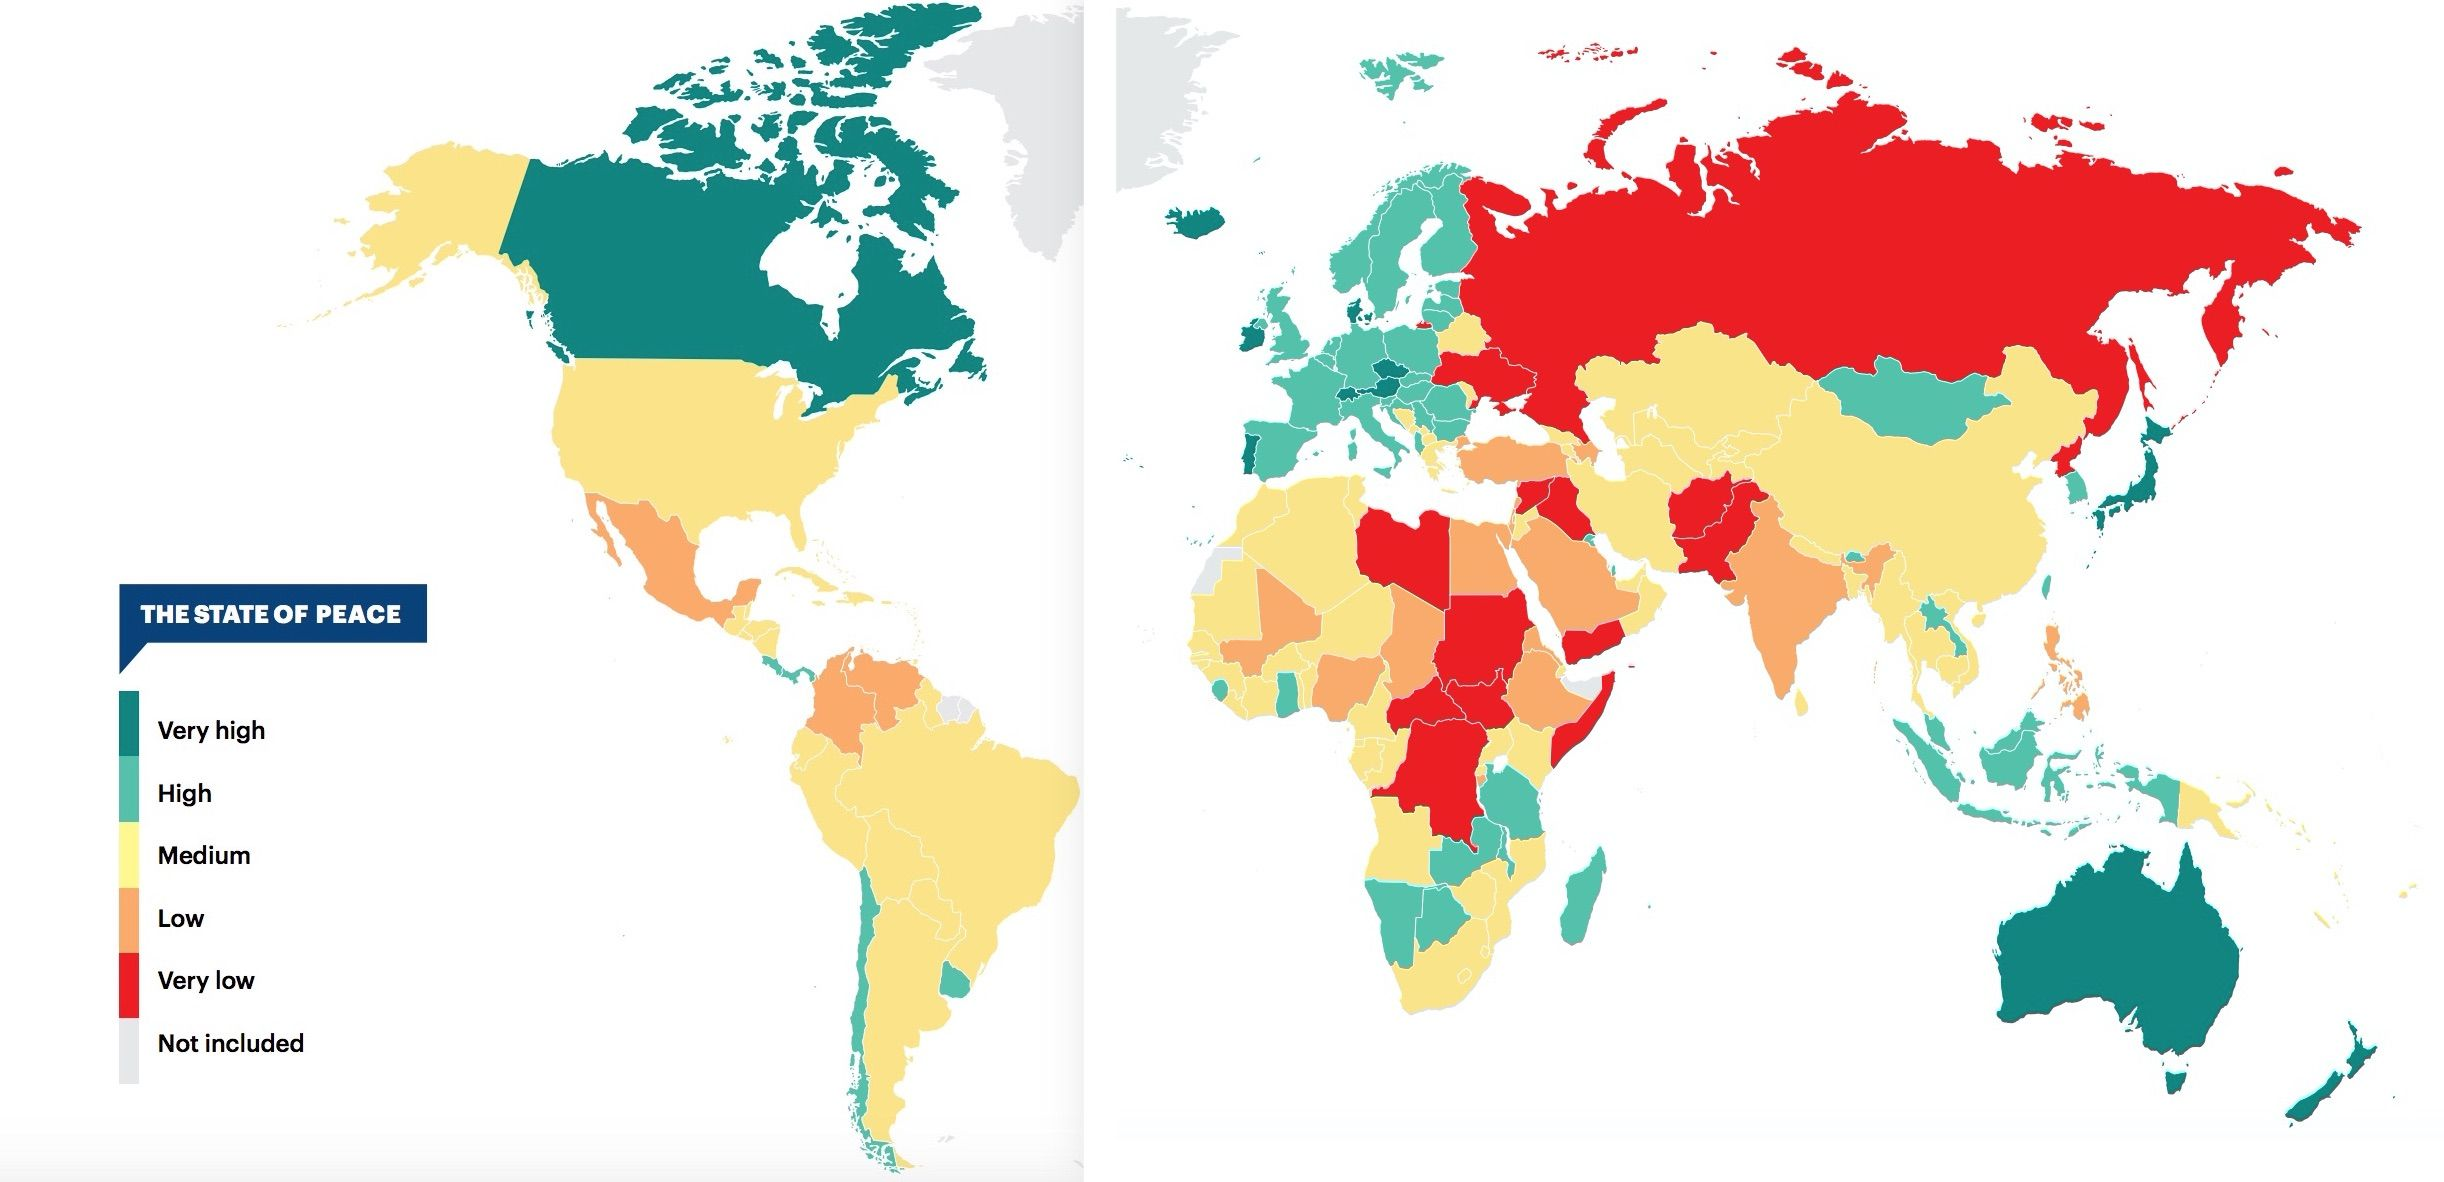 What are the most peaceful countries in the world?